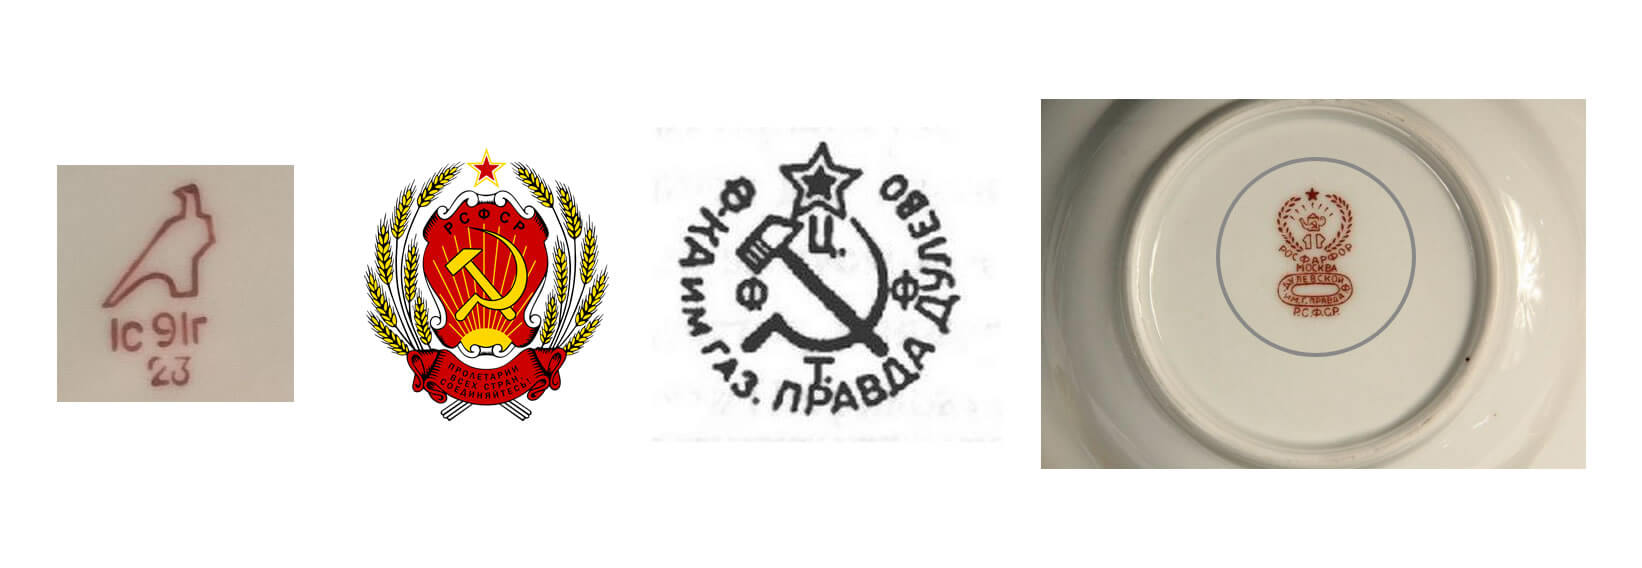 Dulevo Porcelain Factory - the falcon - appeared in 1958 - dishes of this Russian factory - coat of arms of the Soviet Union, hammer and sickle, star, abbreviation RSFSR